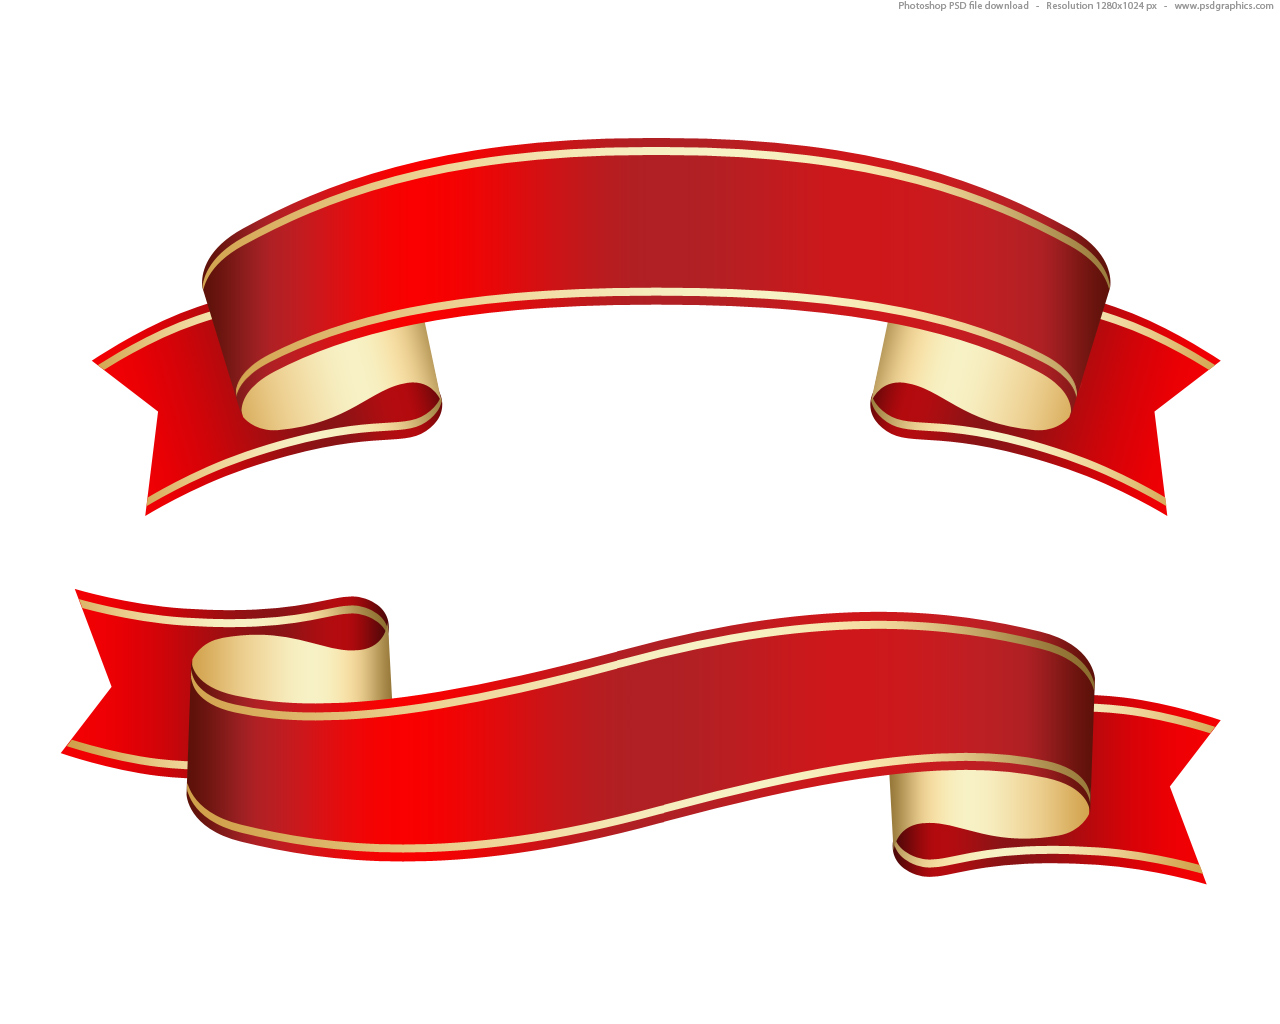 Ribbon Banner Graphic - ClipArt Best